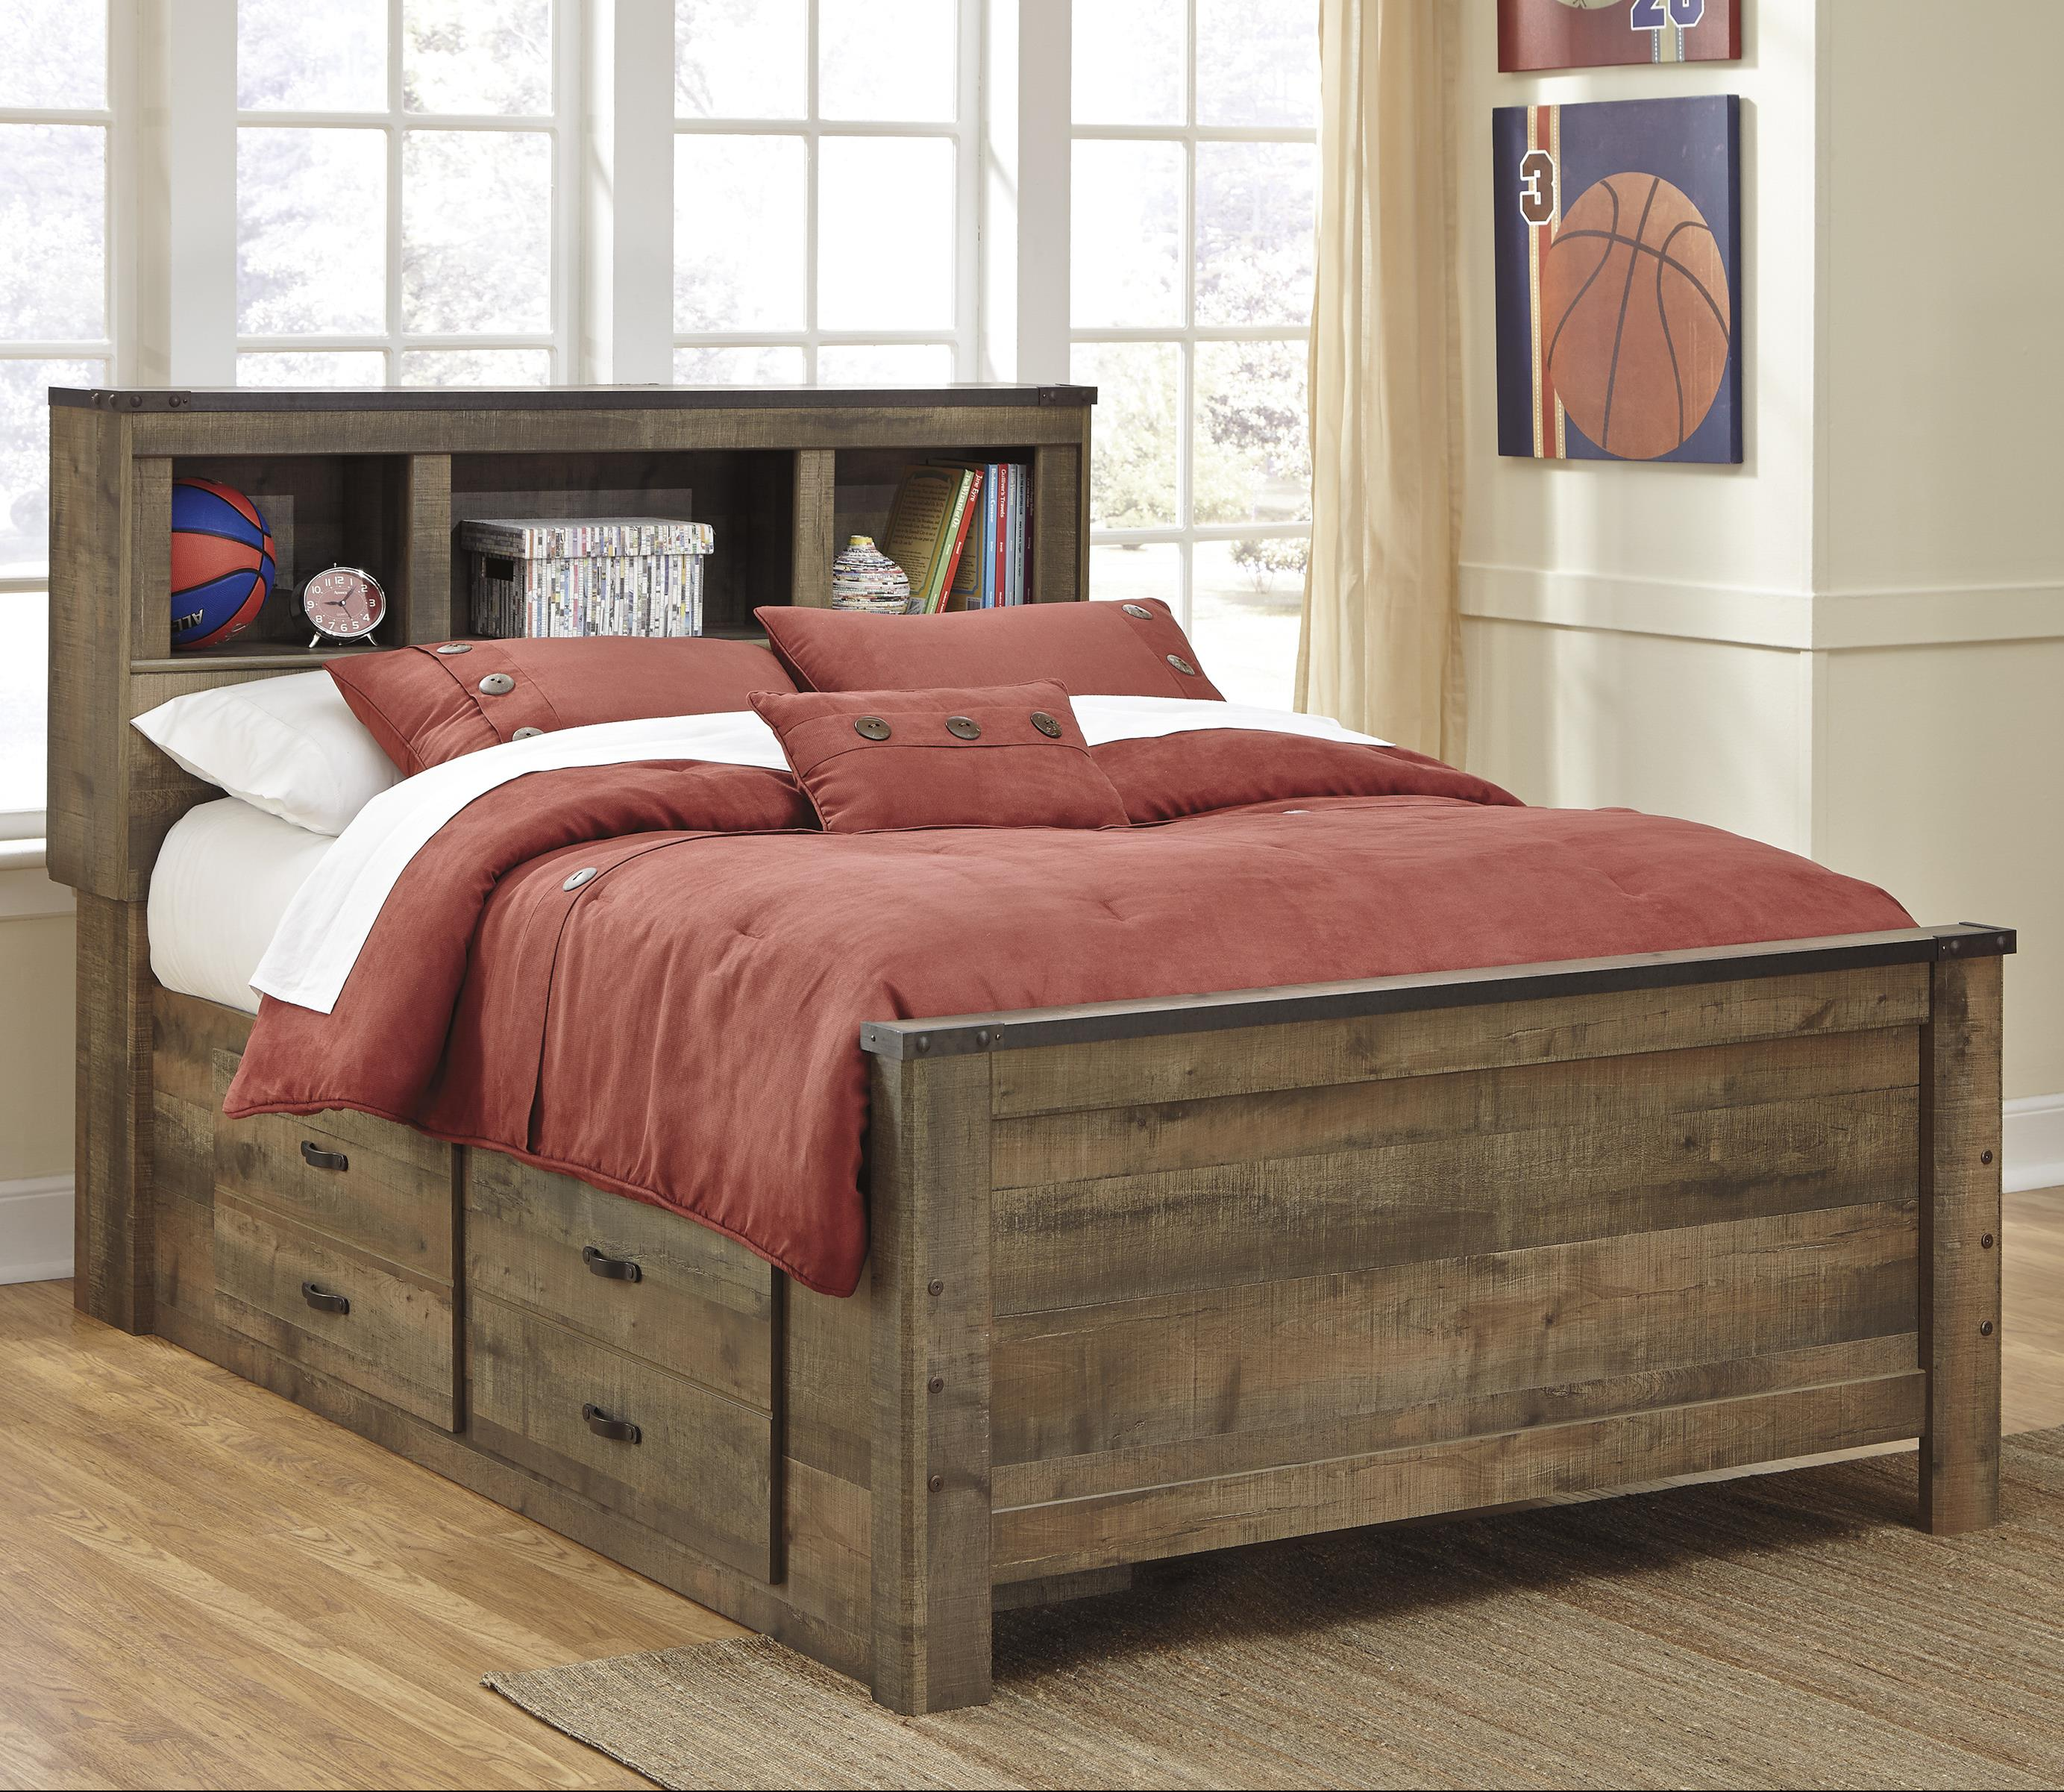 Signature design by ashley trinell rustic look full - Ashley furniture full bedroom sets ...